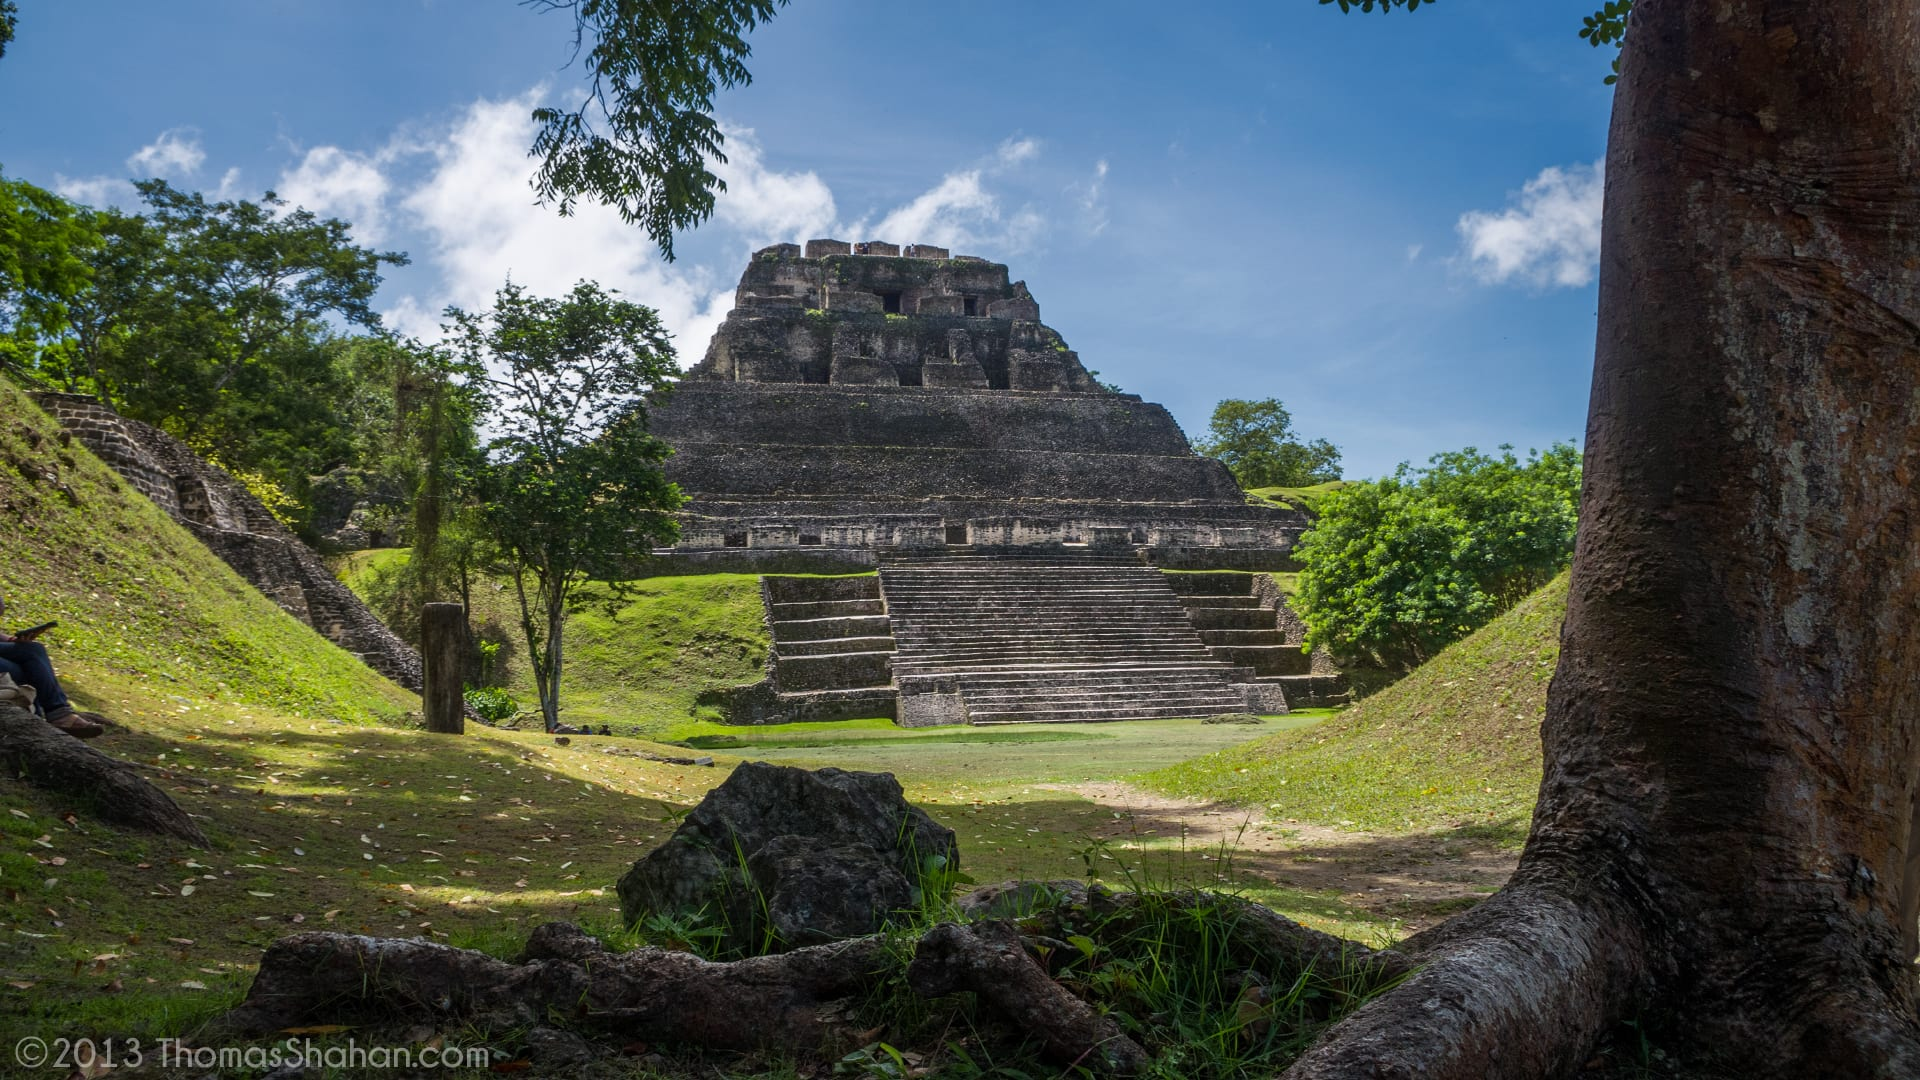 The temple of Xunantunich in Belize